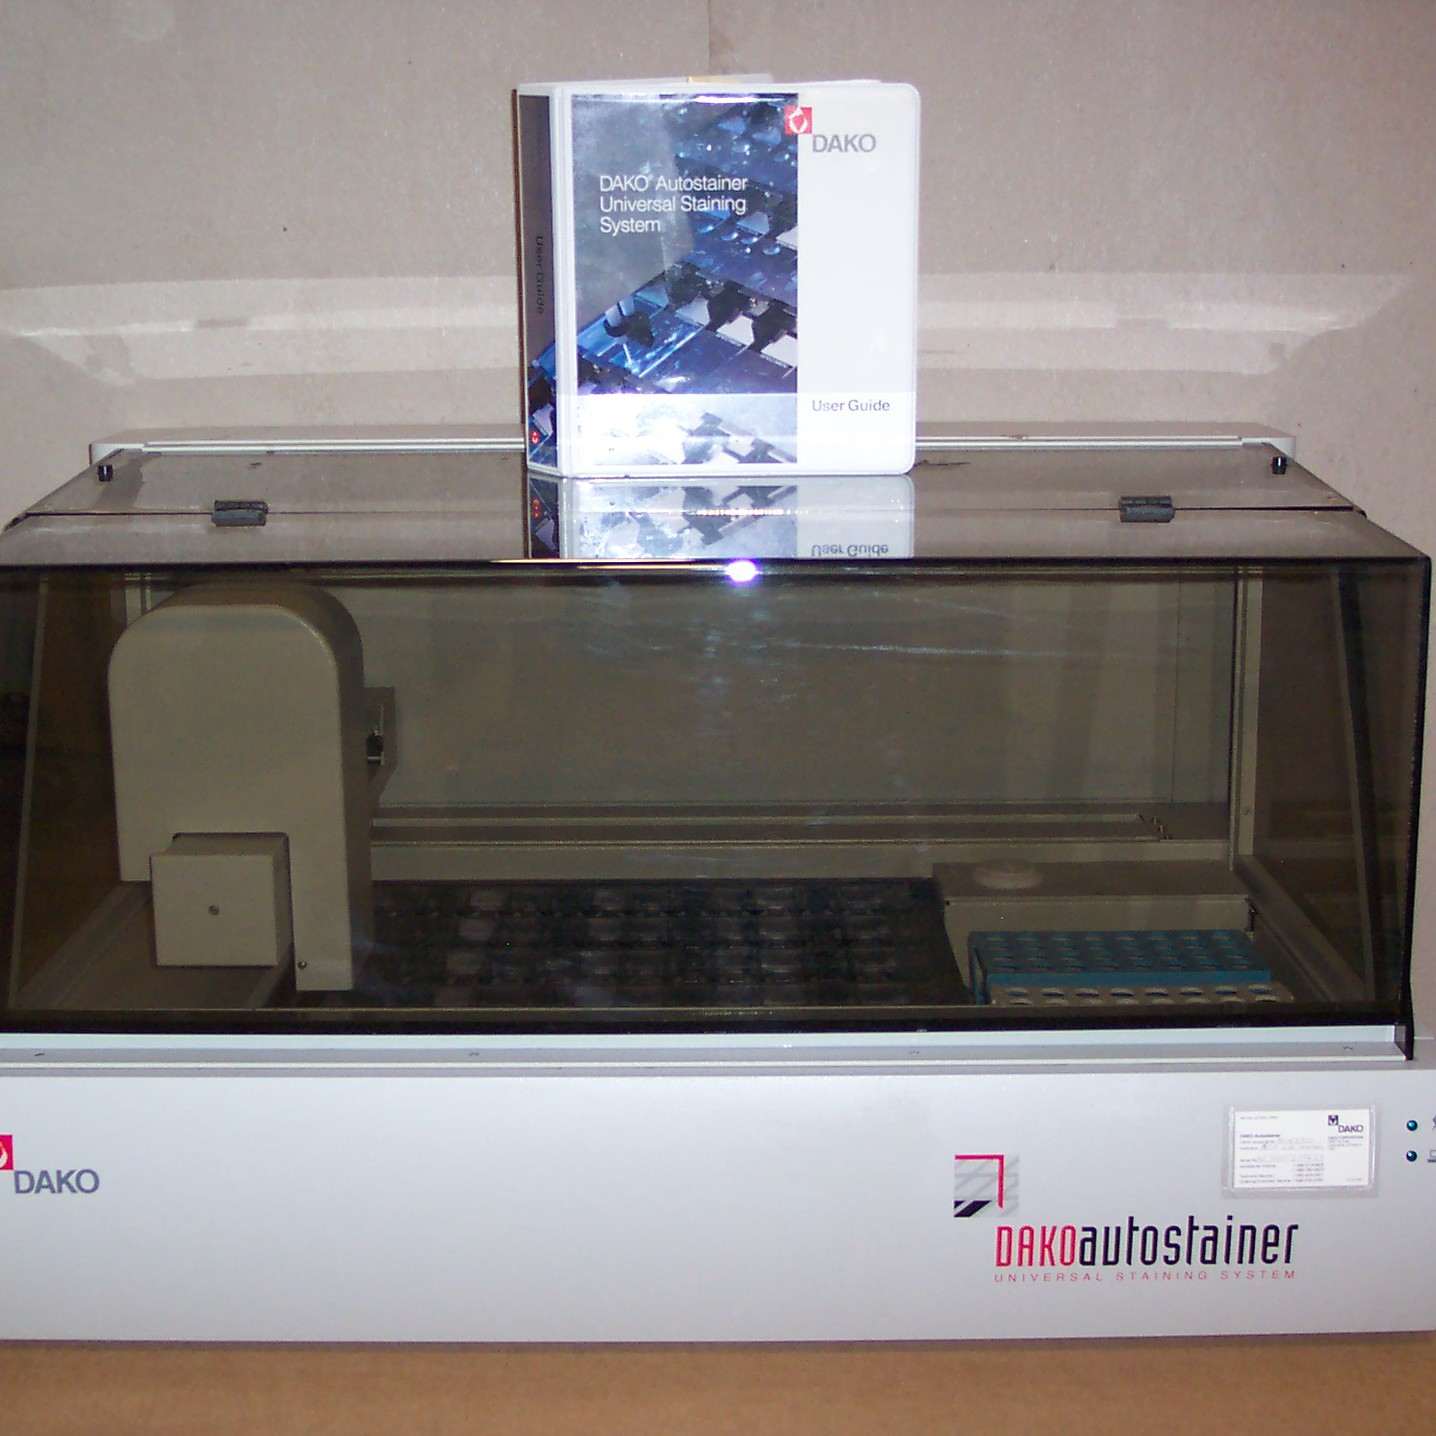 Dako Autostainer - Universal Staining System Image